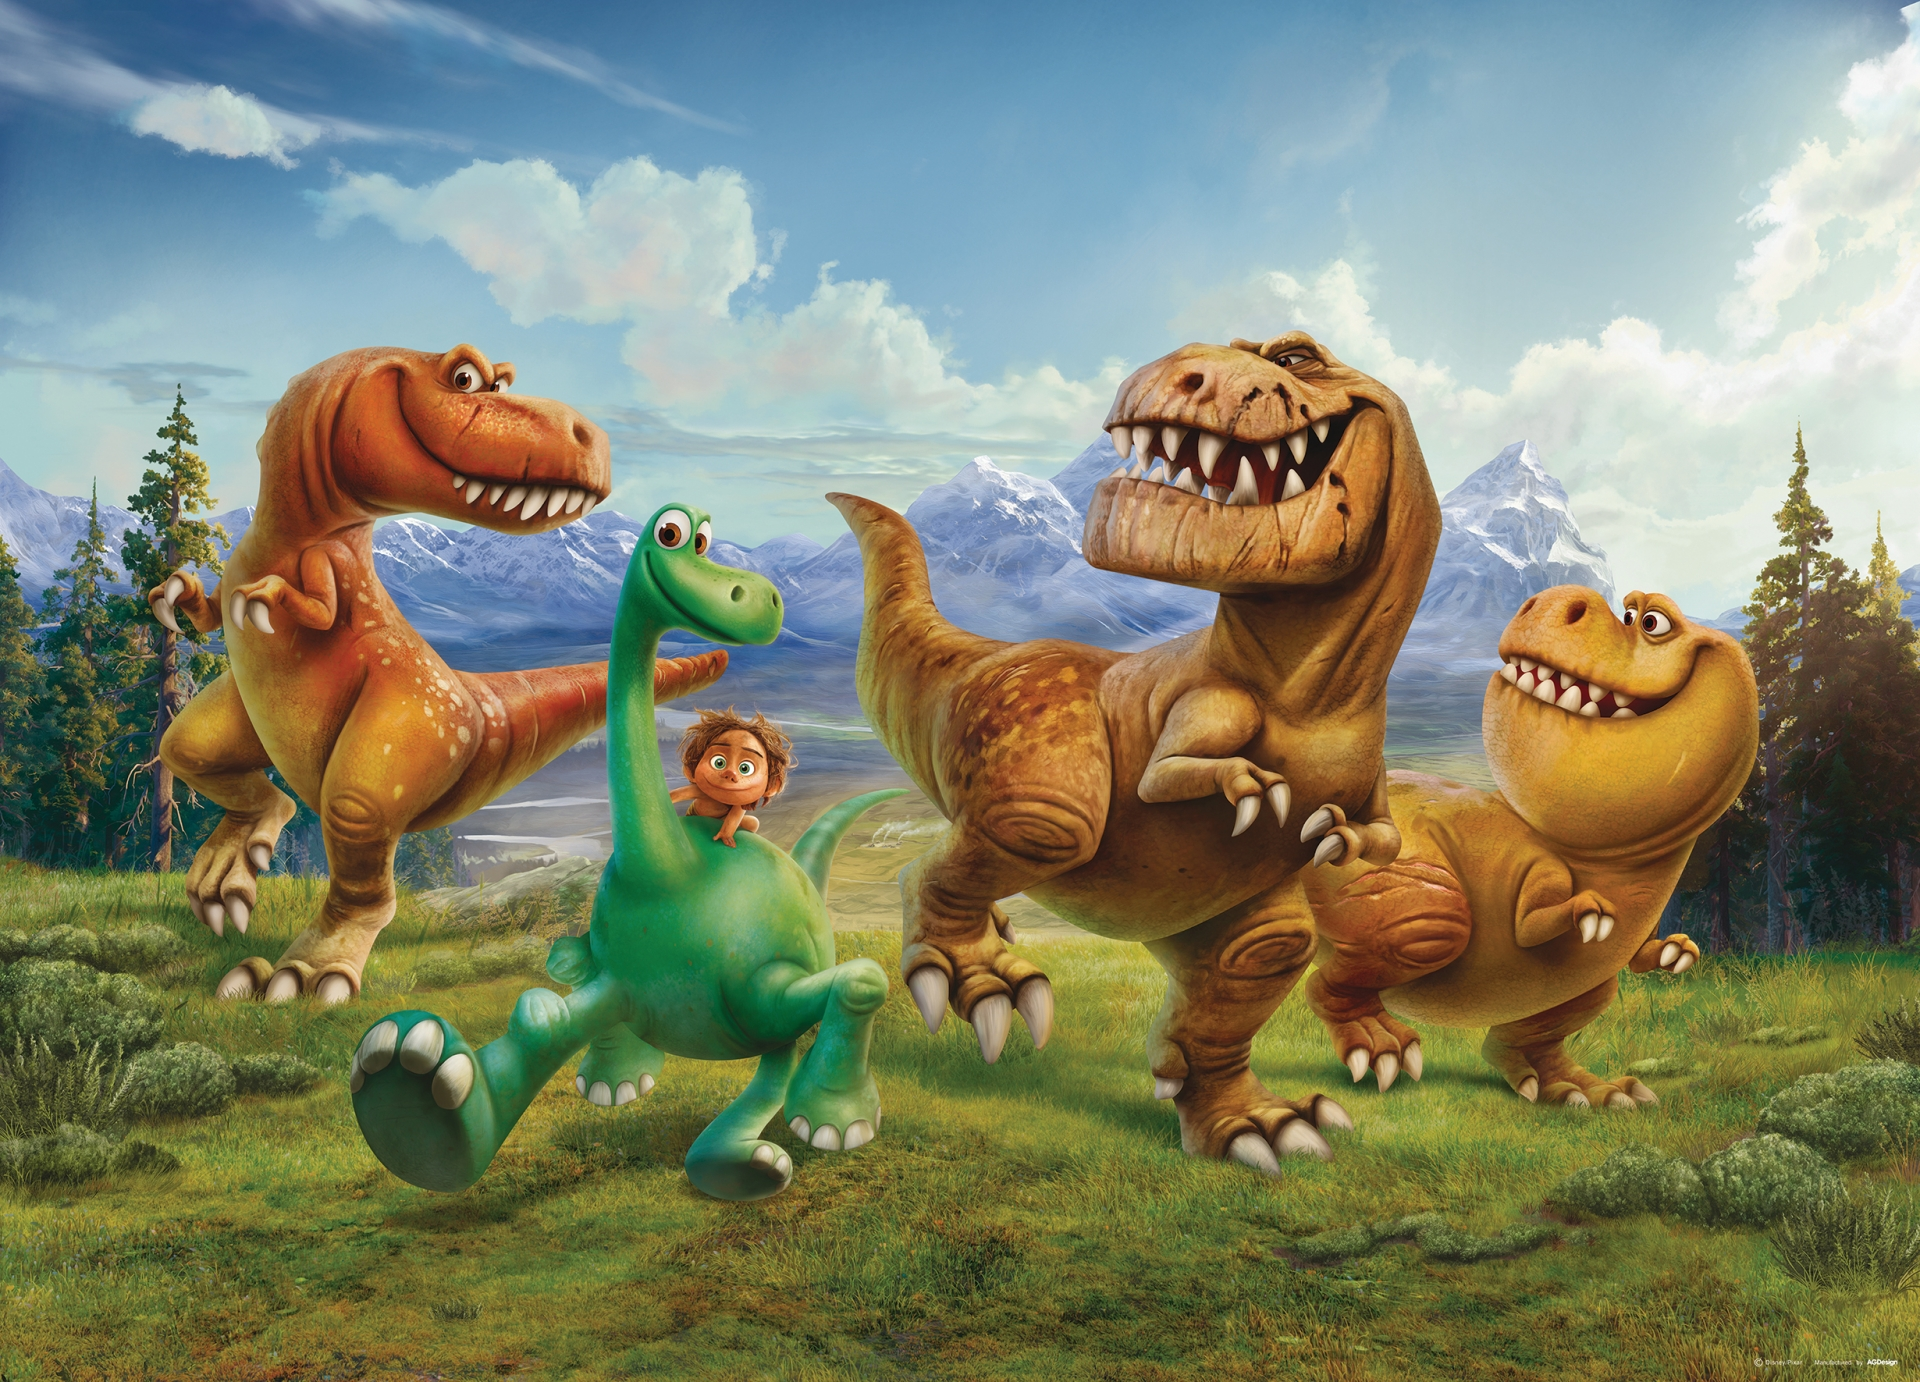 Obrazová tapeta FTD M 0735, Disney, The Good Dinosaur,  160 x 115 cm , AG Design